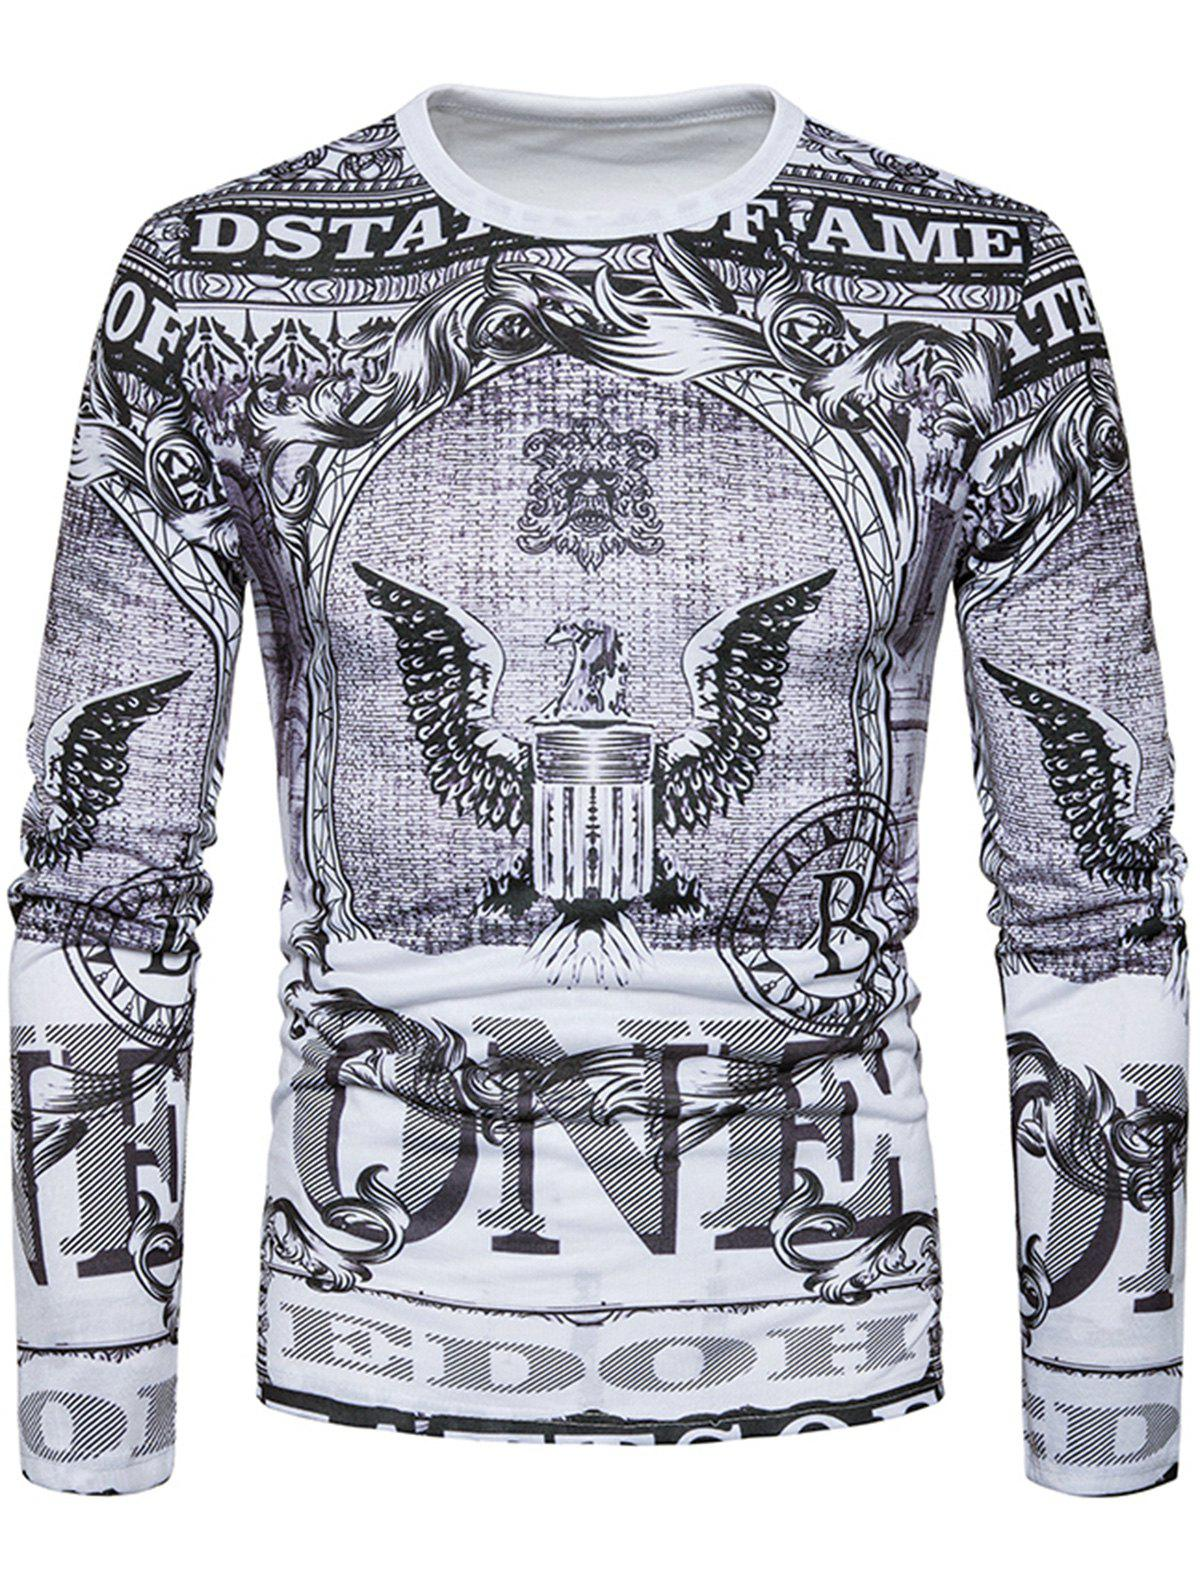 Long Sleeve Eagle Graphic Print T-shirt turndown collar long sleeve eagle graphic print cool shirt